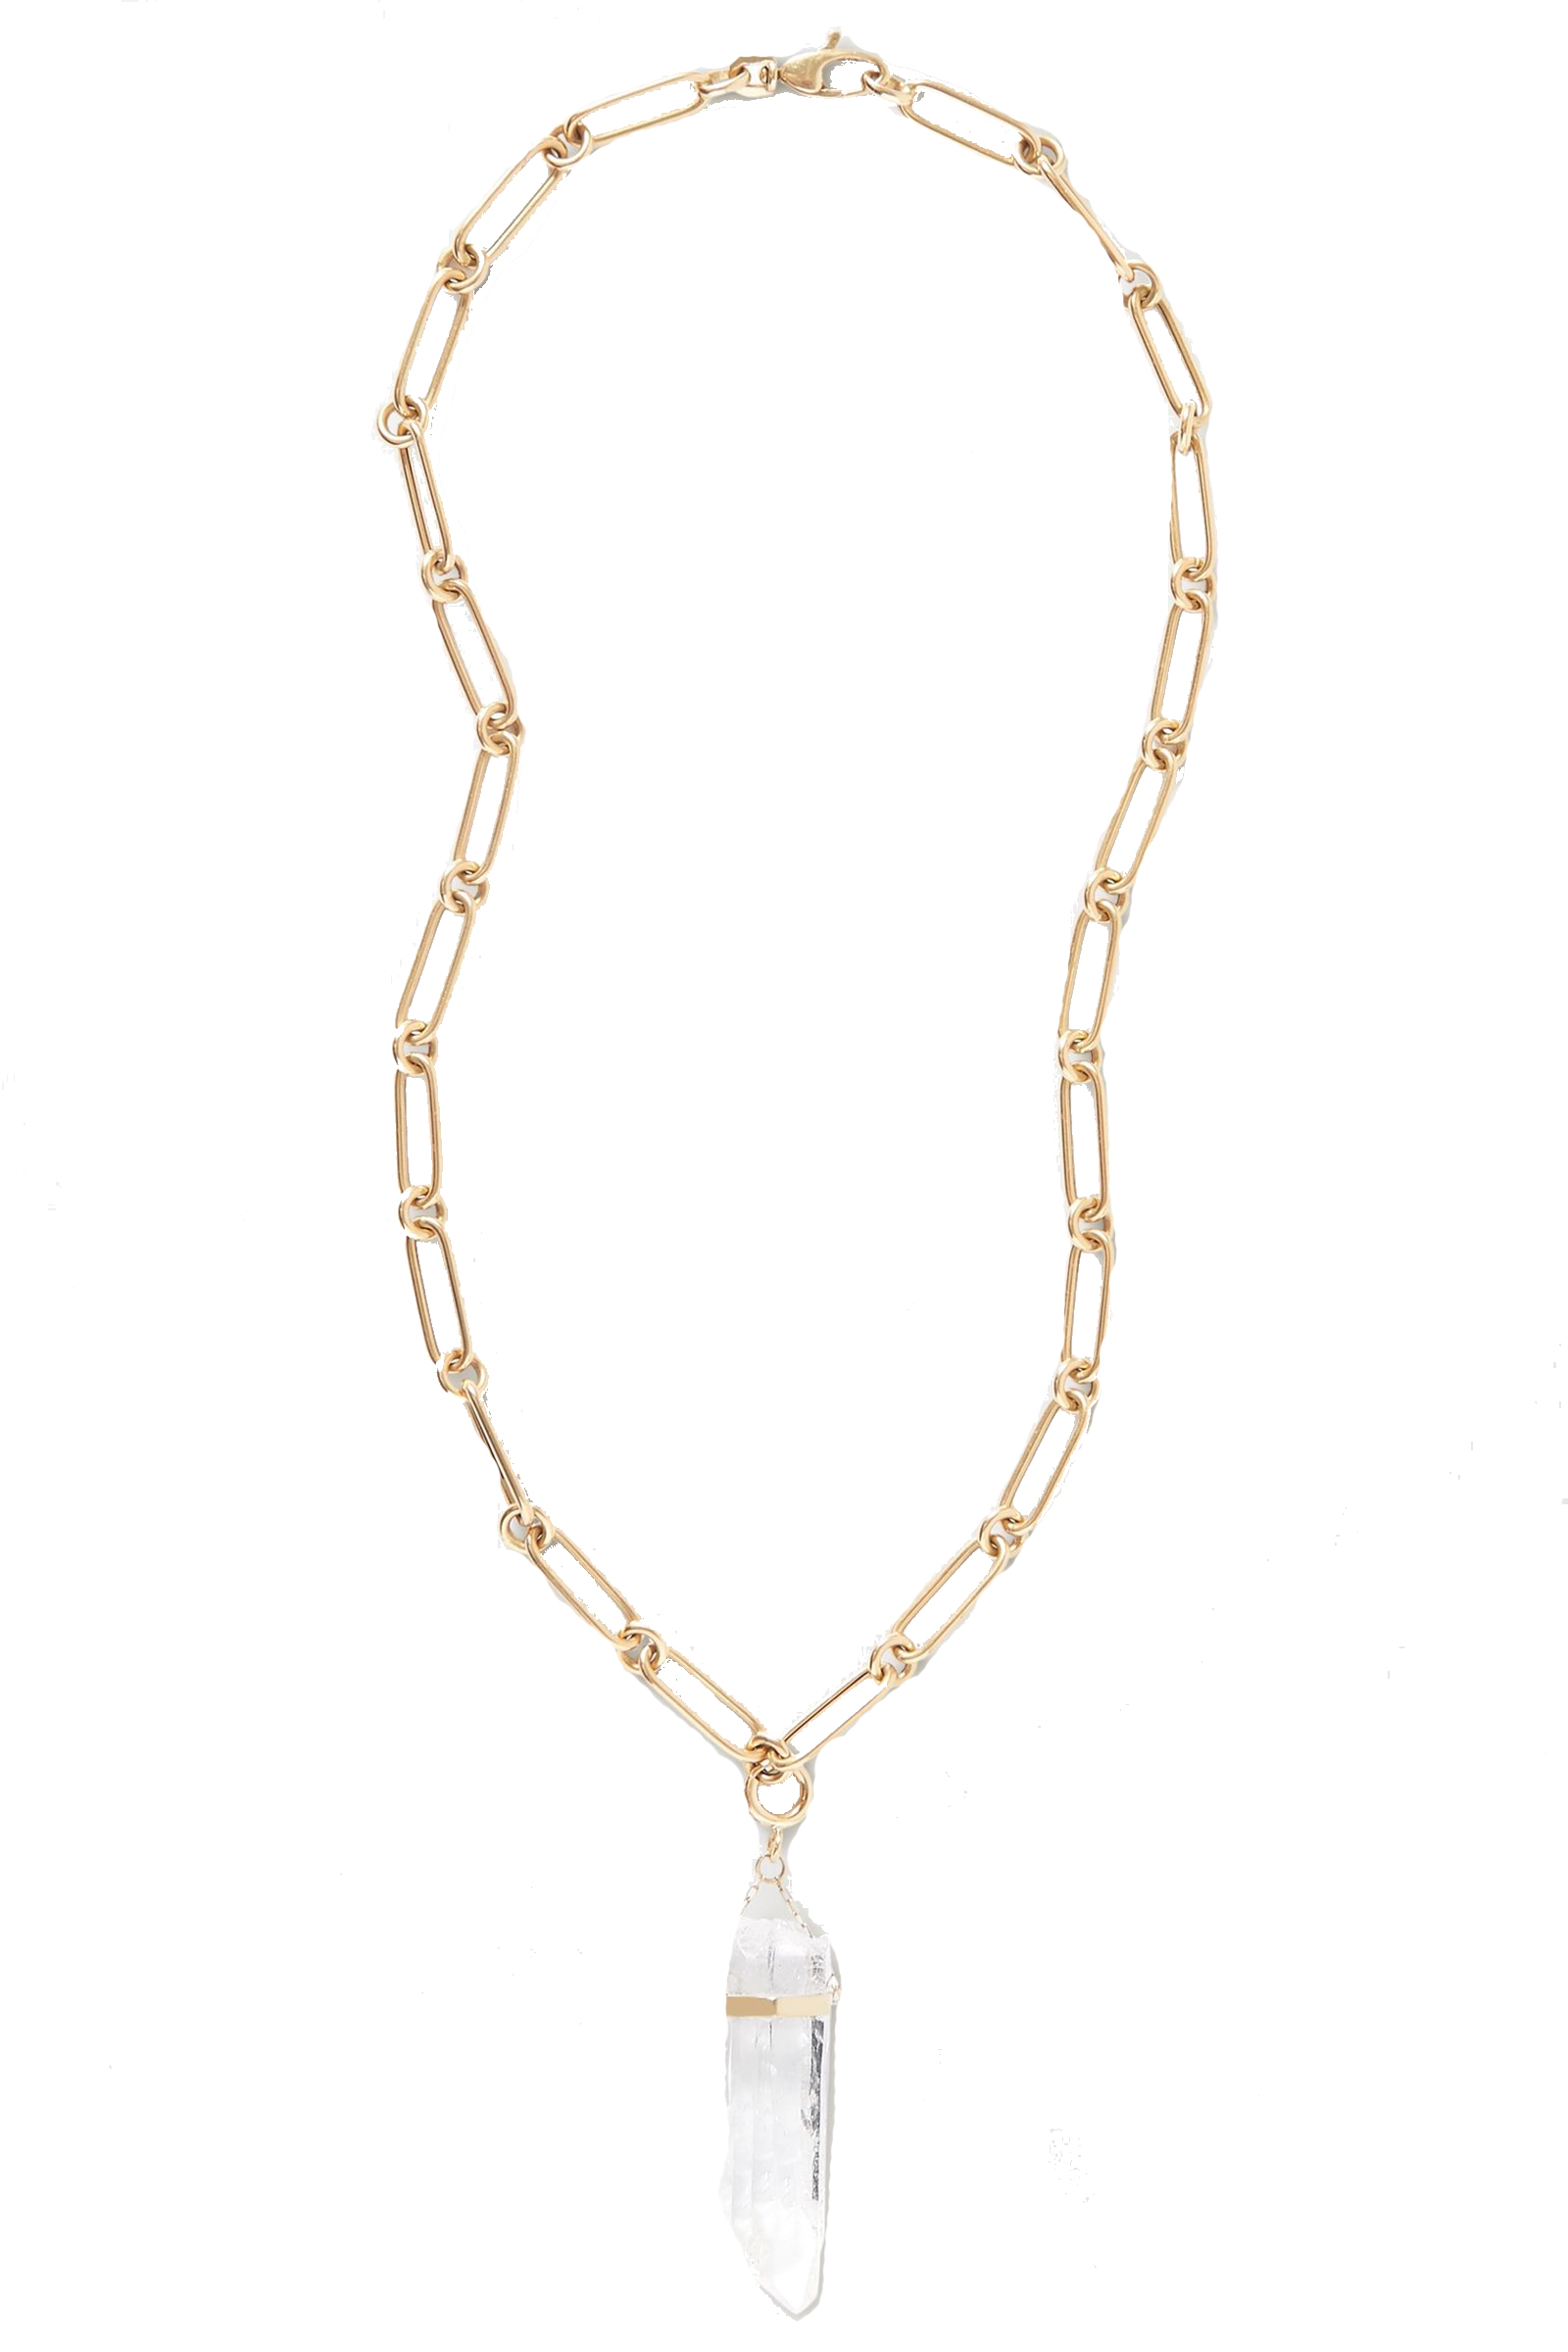 JIA-JIA-Necklace